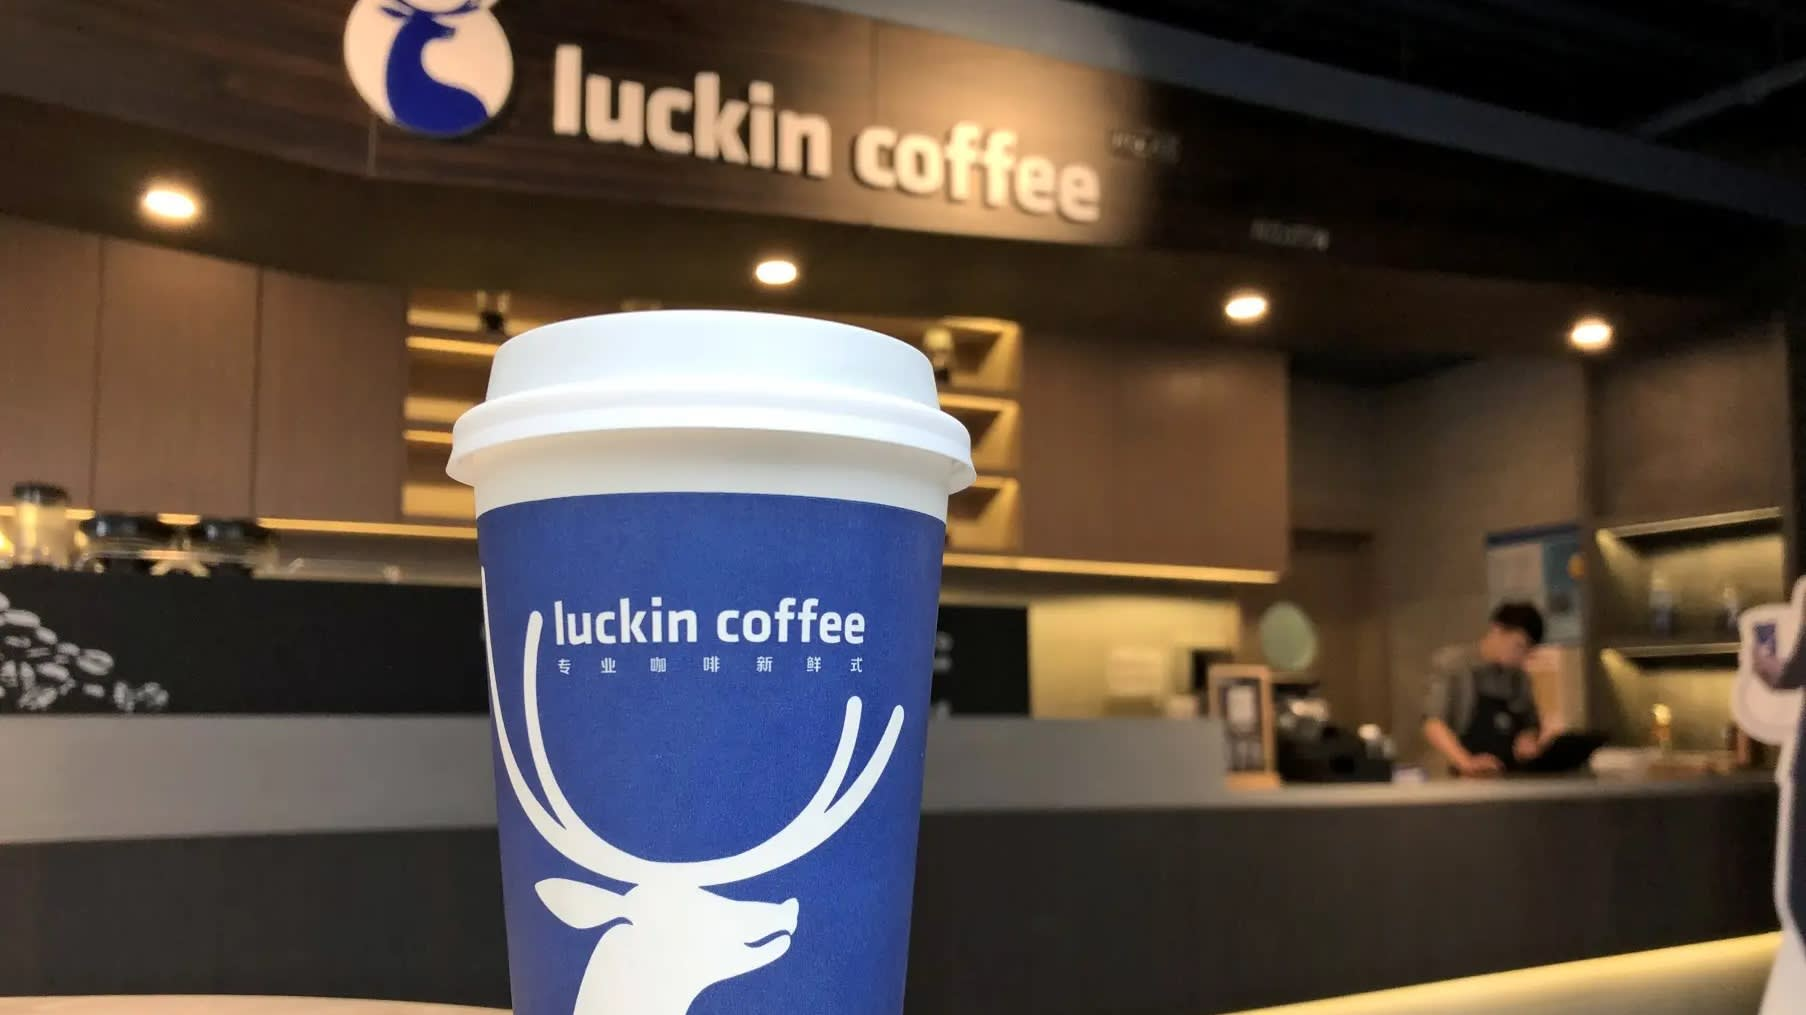 Luckin Coffee's Stock Slides, Despite its Bullish Rating on Wall Street